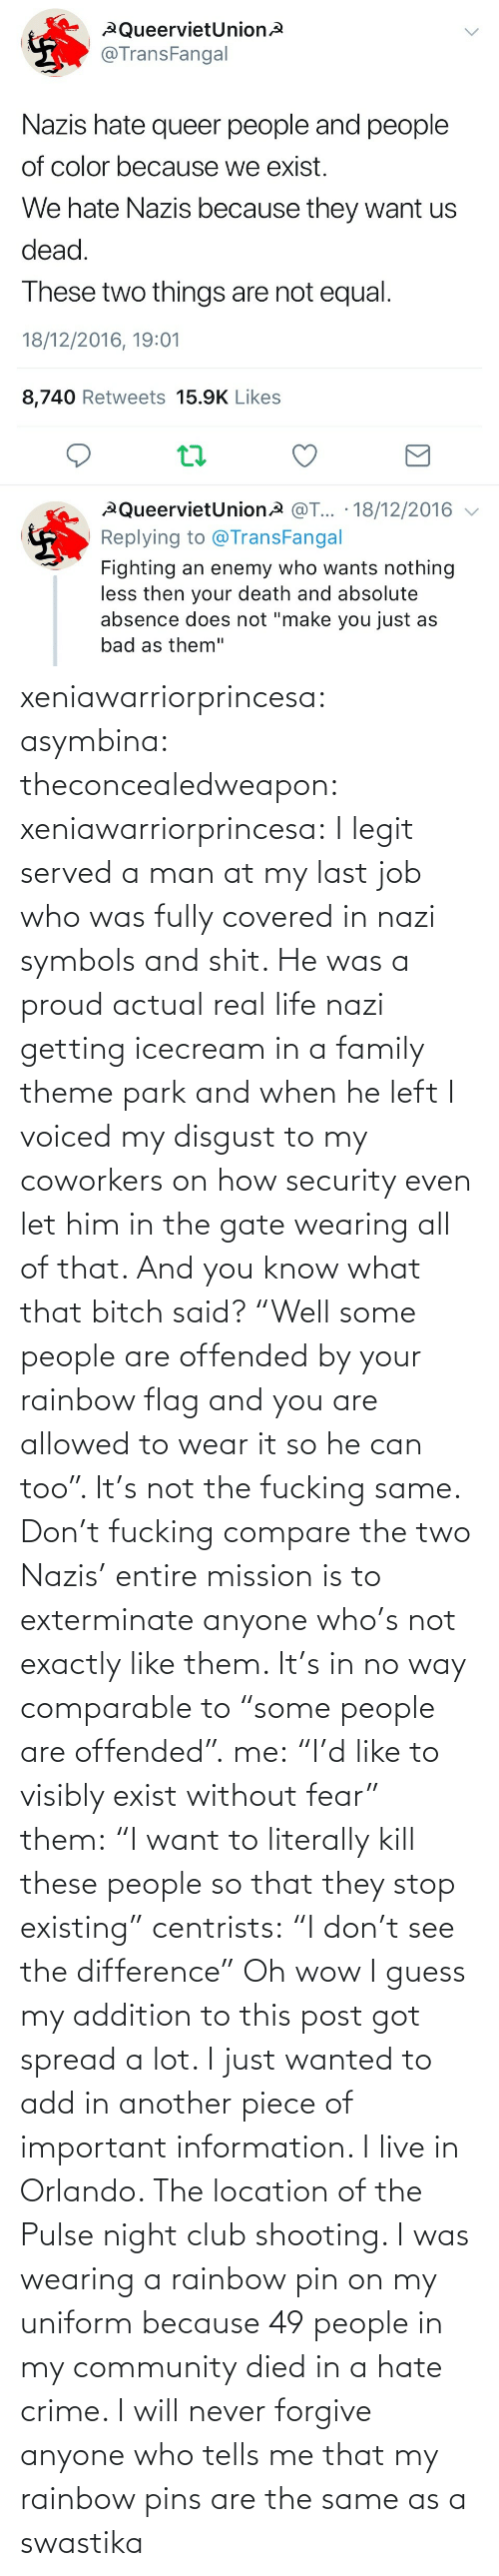 """Rainbow: xeniawarriorprincesa:  asymbina:  theconcealedweapon:  xeniawarriorprincesa:  I legit served a man at my last job who was fully covered in nazi symbols and shit. He was a proud actual real life nazi getting icecream in a family theme park and when he left I voiced my disgust to my coworkers on how security even let him in the gate wearing all of that. And you know what that bitch said? """"Well some people are offended by your rainbow flag and you are allowed to wear it so he can too"""". It's not the fucking same. Don't fucking compare the two  Nazis' entire mission is to exterminate anyone who's not exactly like them. It's in no way comparable to """"some people are offended"""".  me:""""I'd like to visibly exist without fear"""" them:""""I want to literally kill these people so that they stop existing"""" centrists:""""I don't see the difference""""   Oh wow I guess my addition to this post got spread a lot. I just wanted to add in another piece of important information. I live in Orlando. The location of the Pulse night club shooting. I was wearing a rainbow pin on my uniform because 49 people in my community died in a hate crime. I will never forgive anyone who tells me that my rainbow pins are the same as a swastika"""